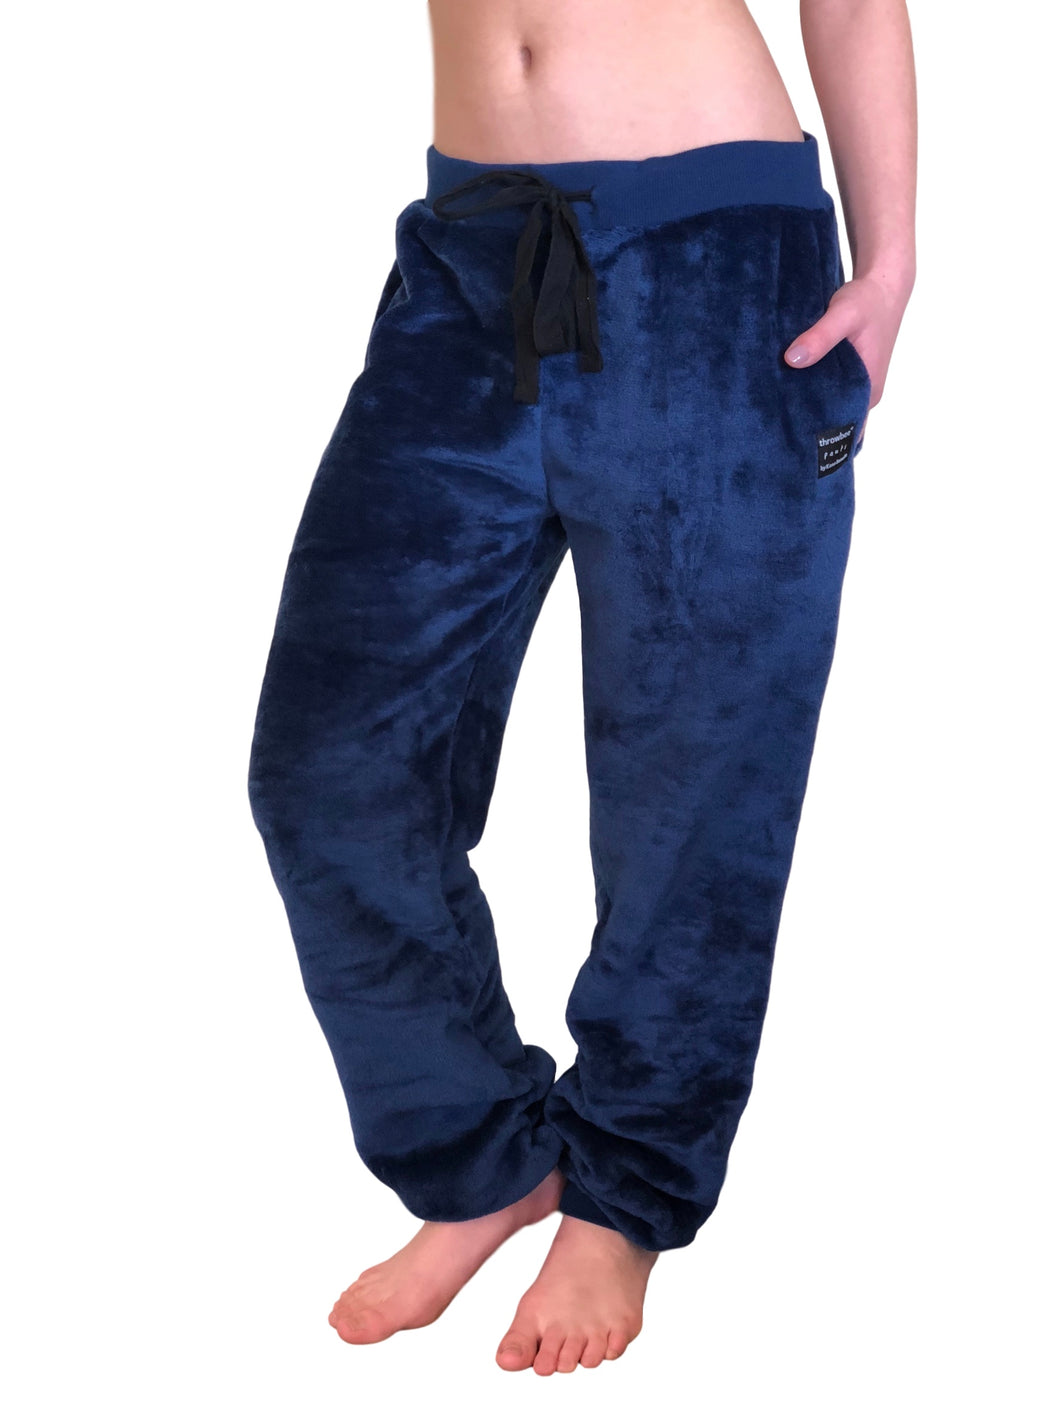 throwbee PANTS - Blue (unisex)